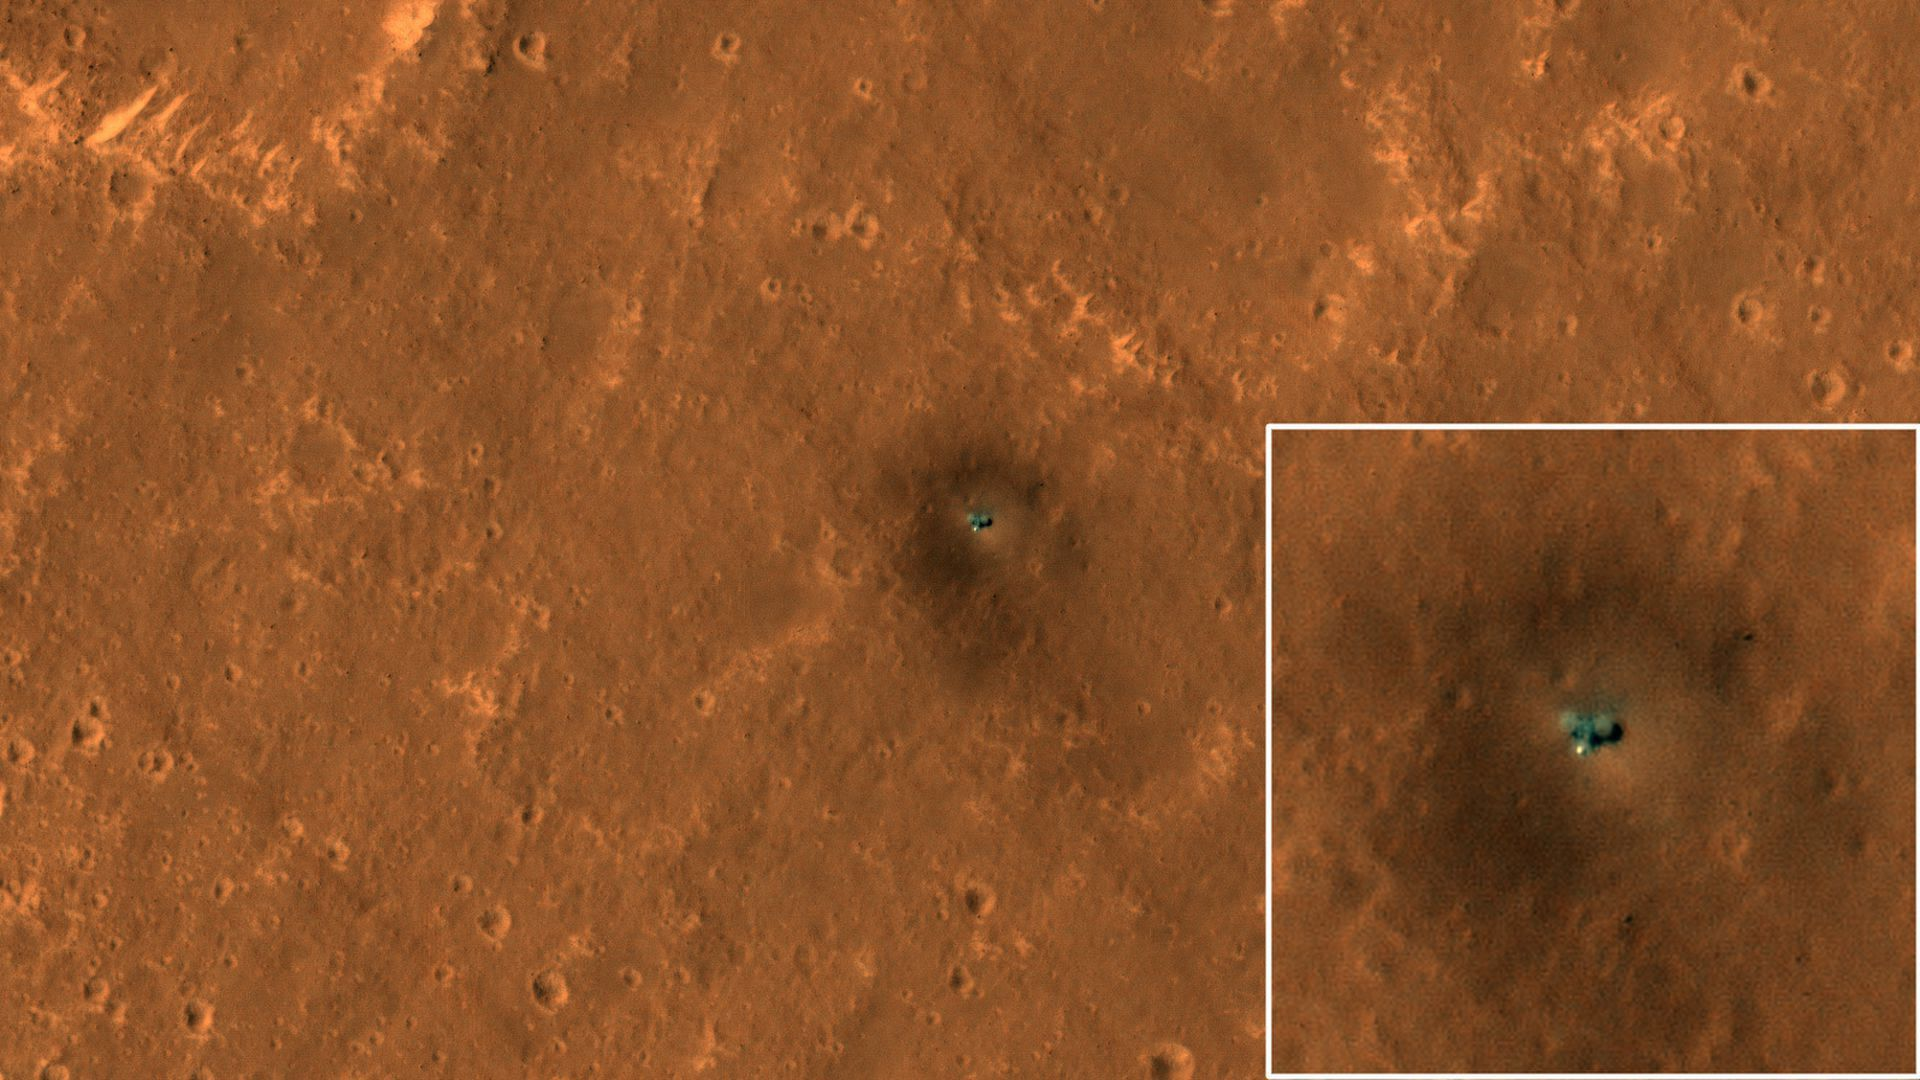 NASA's Mars Reconnaissance Orbiter caught sight of the space agency's InSight lander on the Martian surface